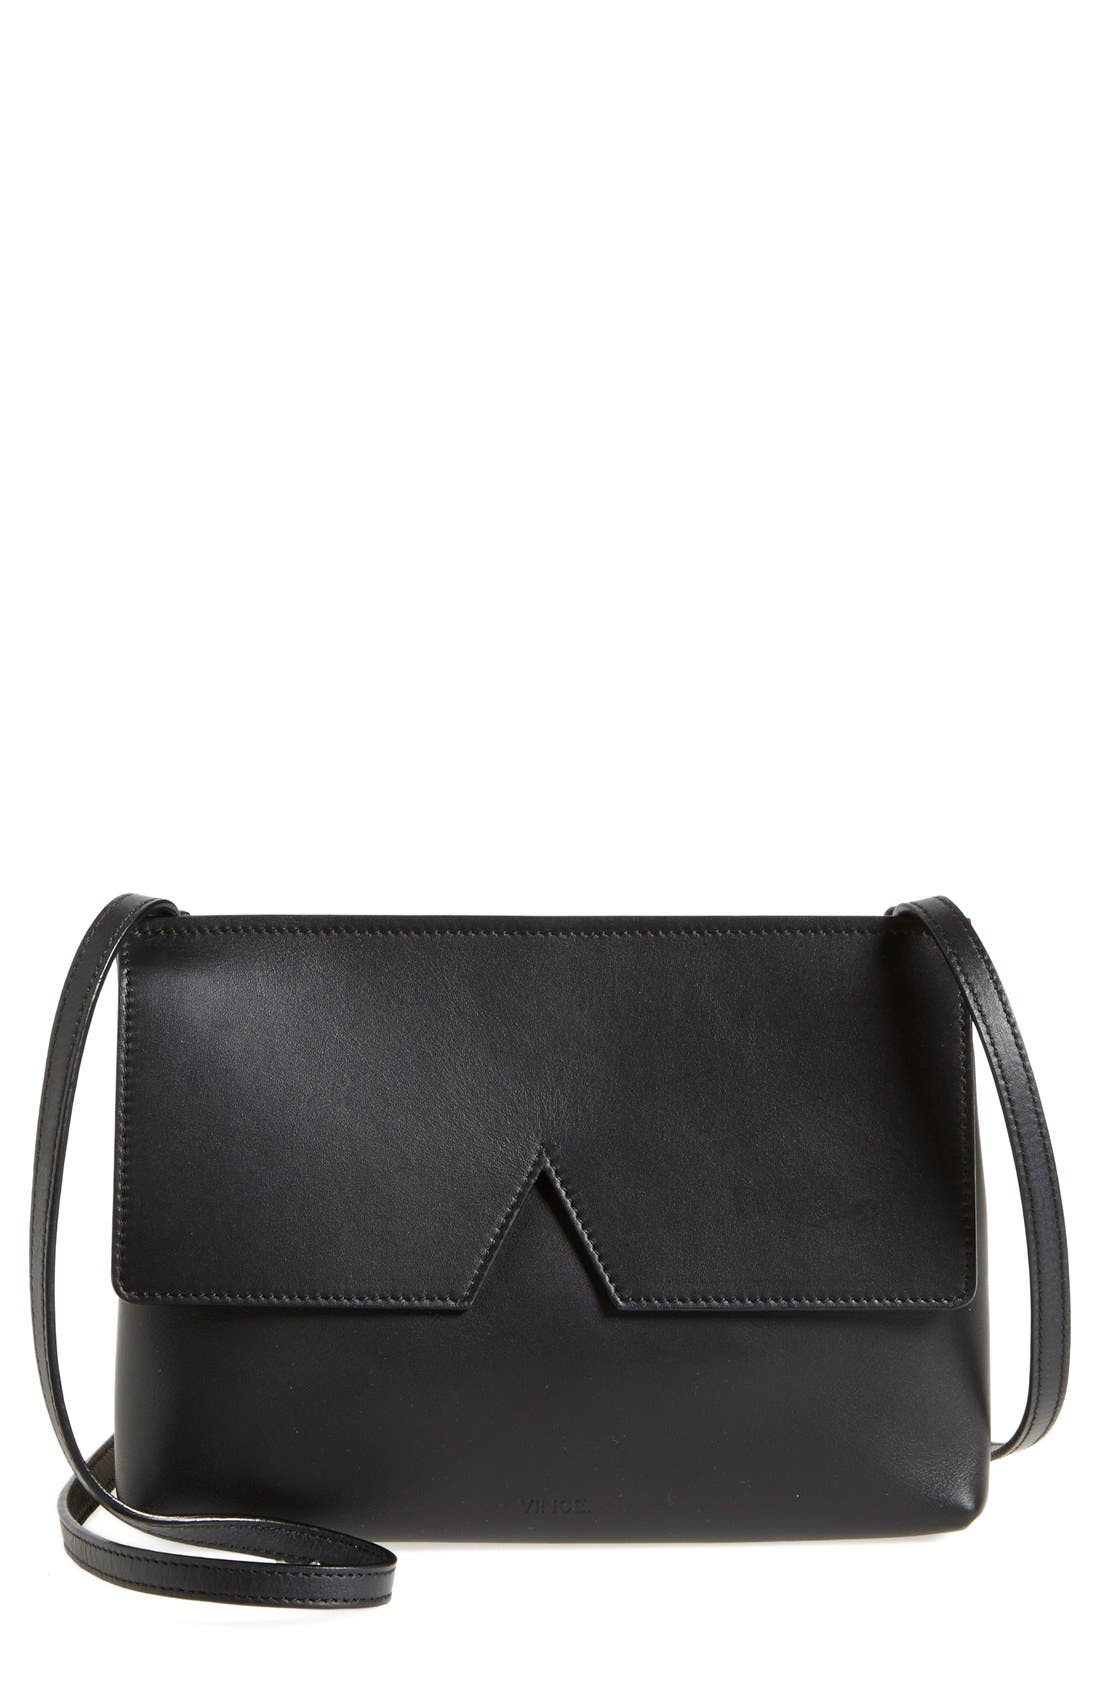 'Signature Collection - Small' Leather Crossbody Bag,                         Main,                         color, Black